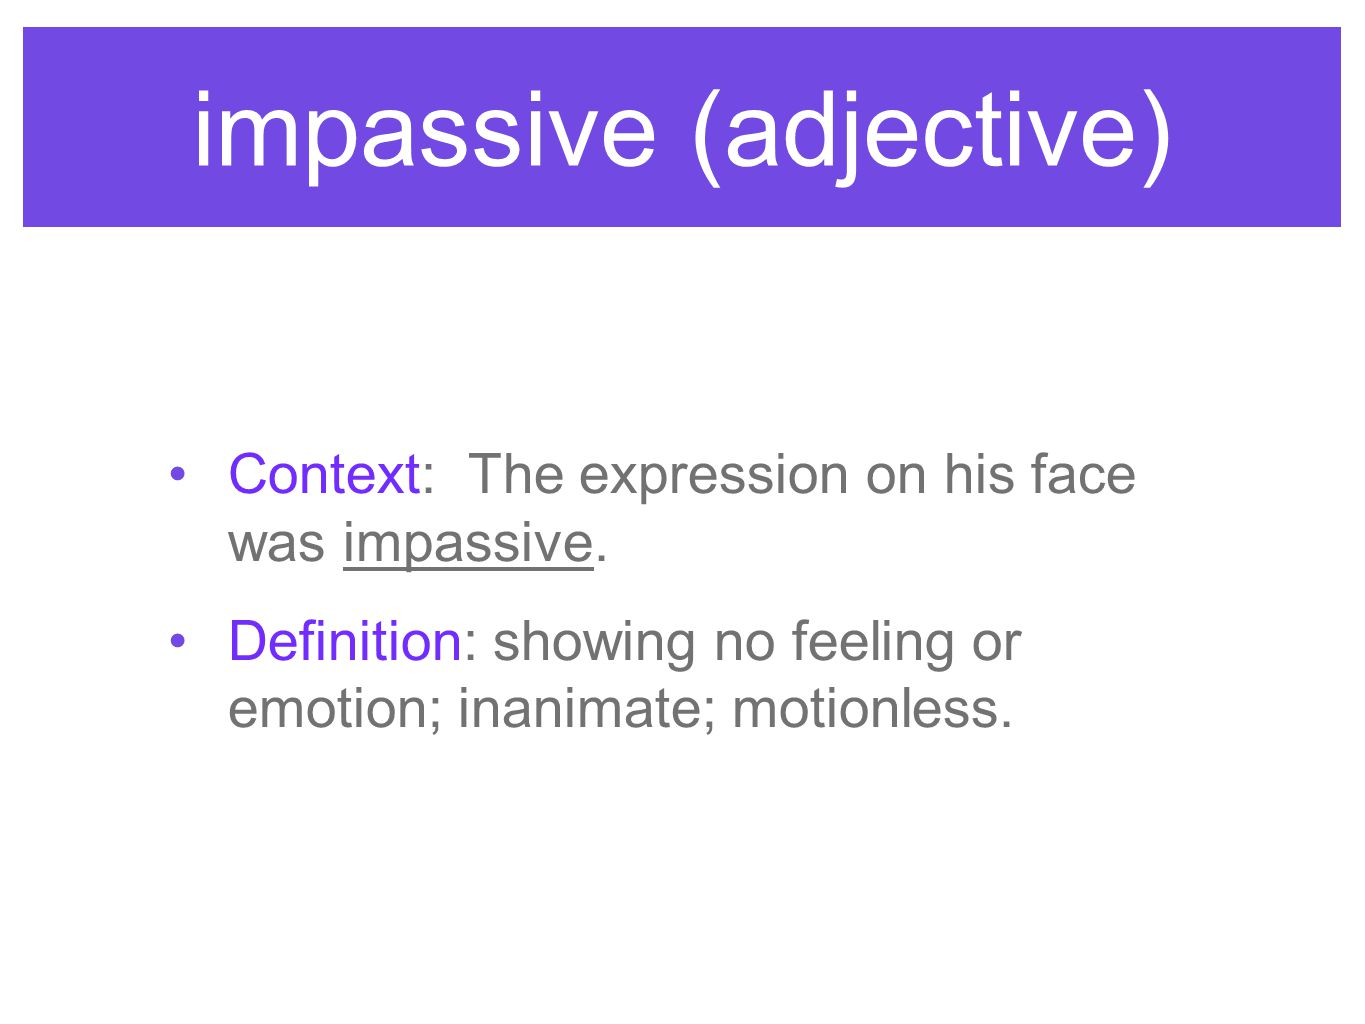 impassive (adjective) Context: The expression on his face was impassive. Definition: showing no feeling or emotion; inanimate; motionless.